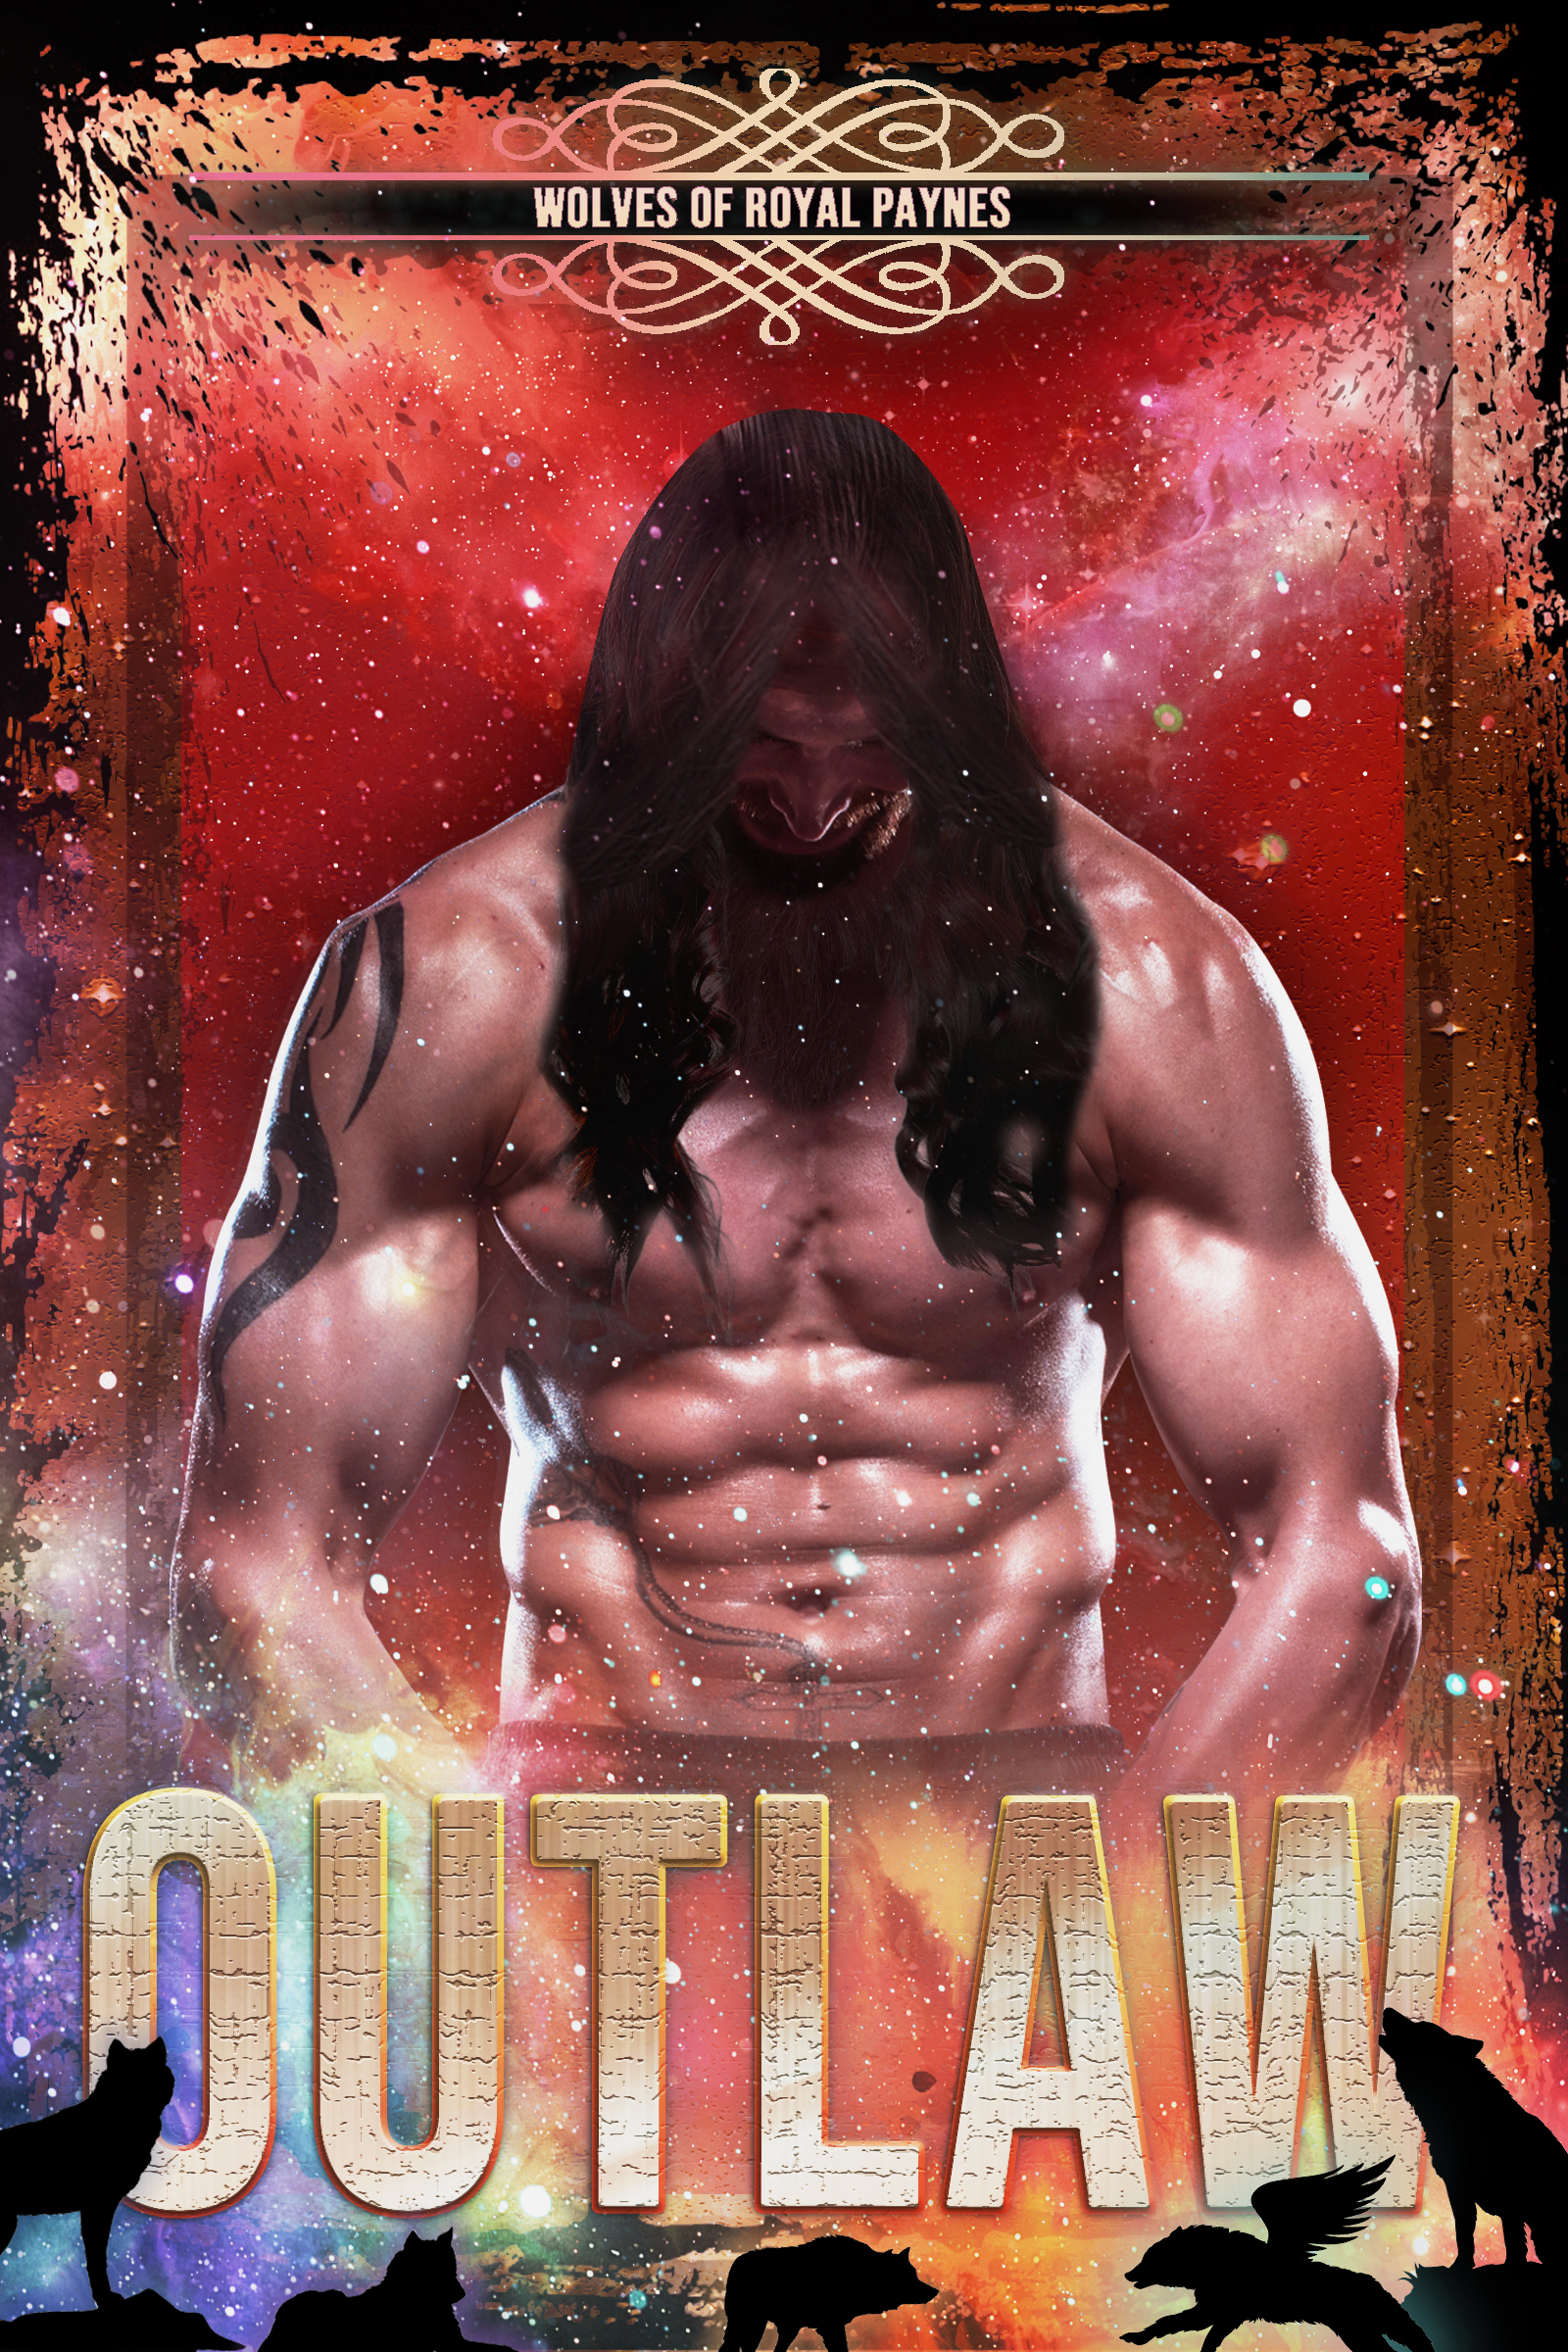 OUTLAW1